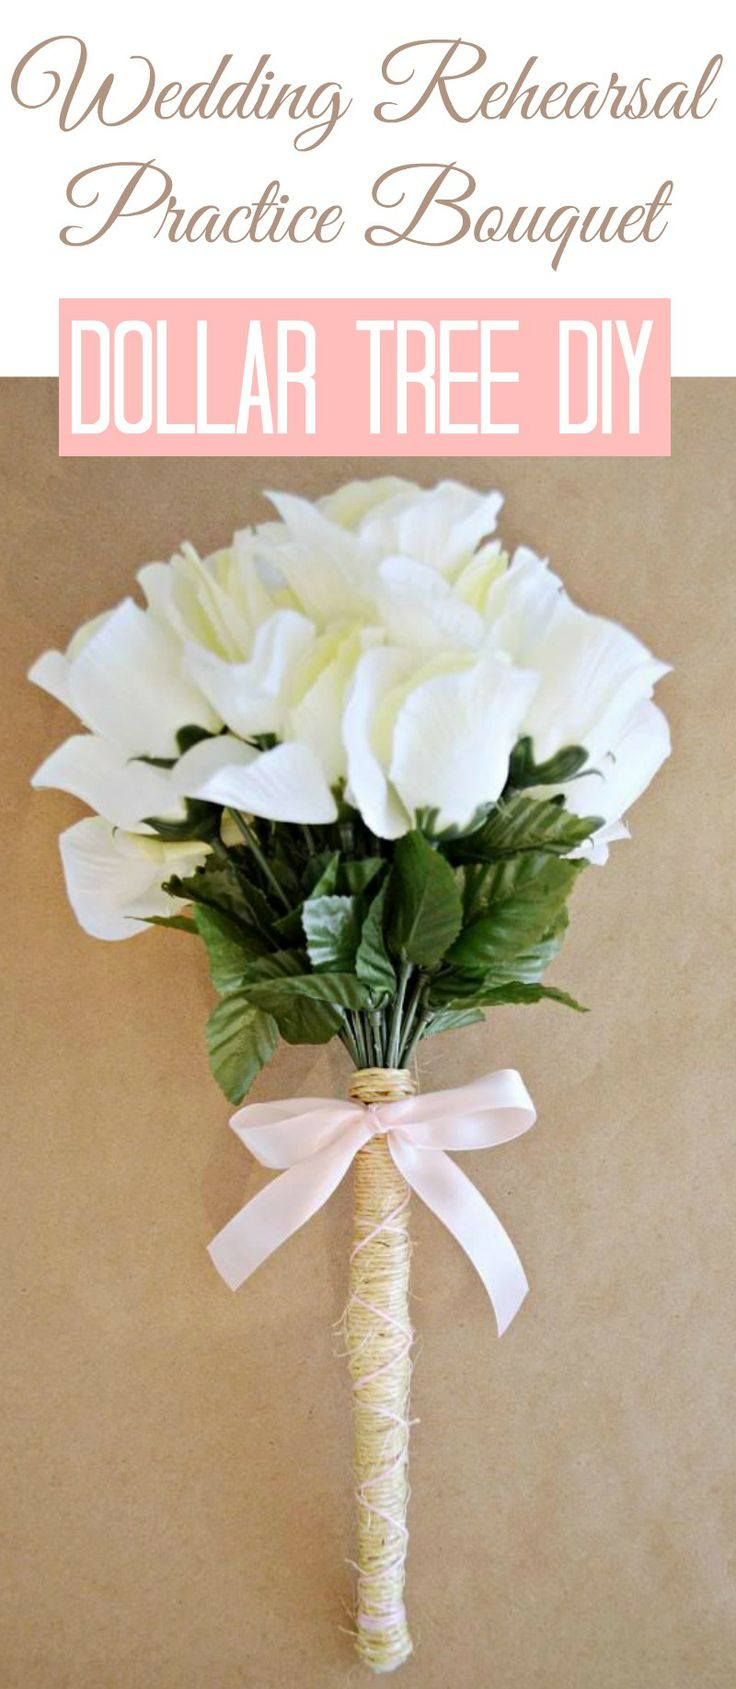 Wedding Idea: Diy Practice Rehearsal Bouquet with Dollar Tree Flowers #wedding #weddingidea